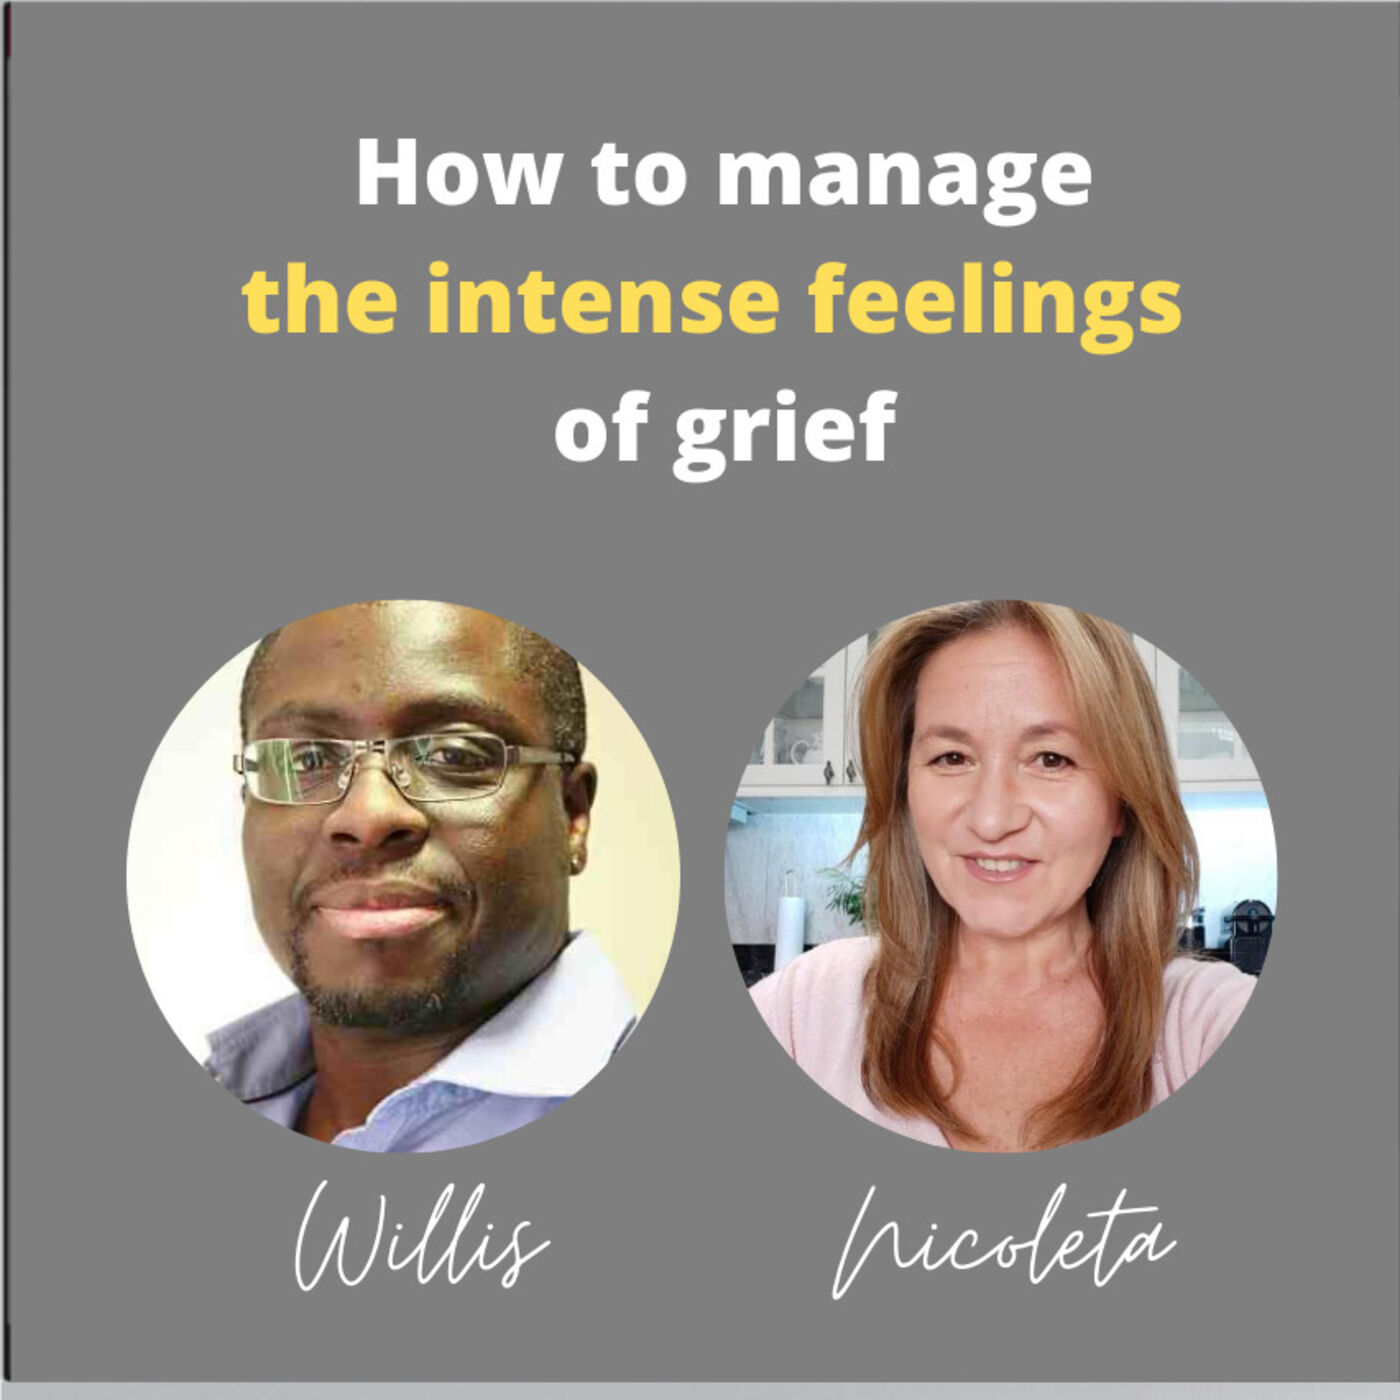 9 - How to manage the intense feelings of grieving